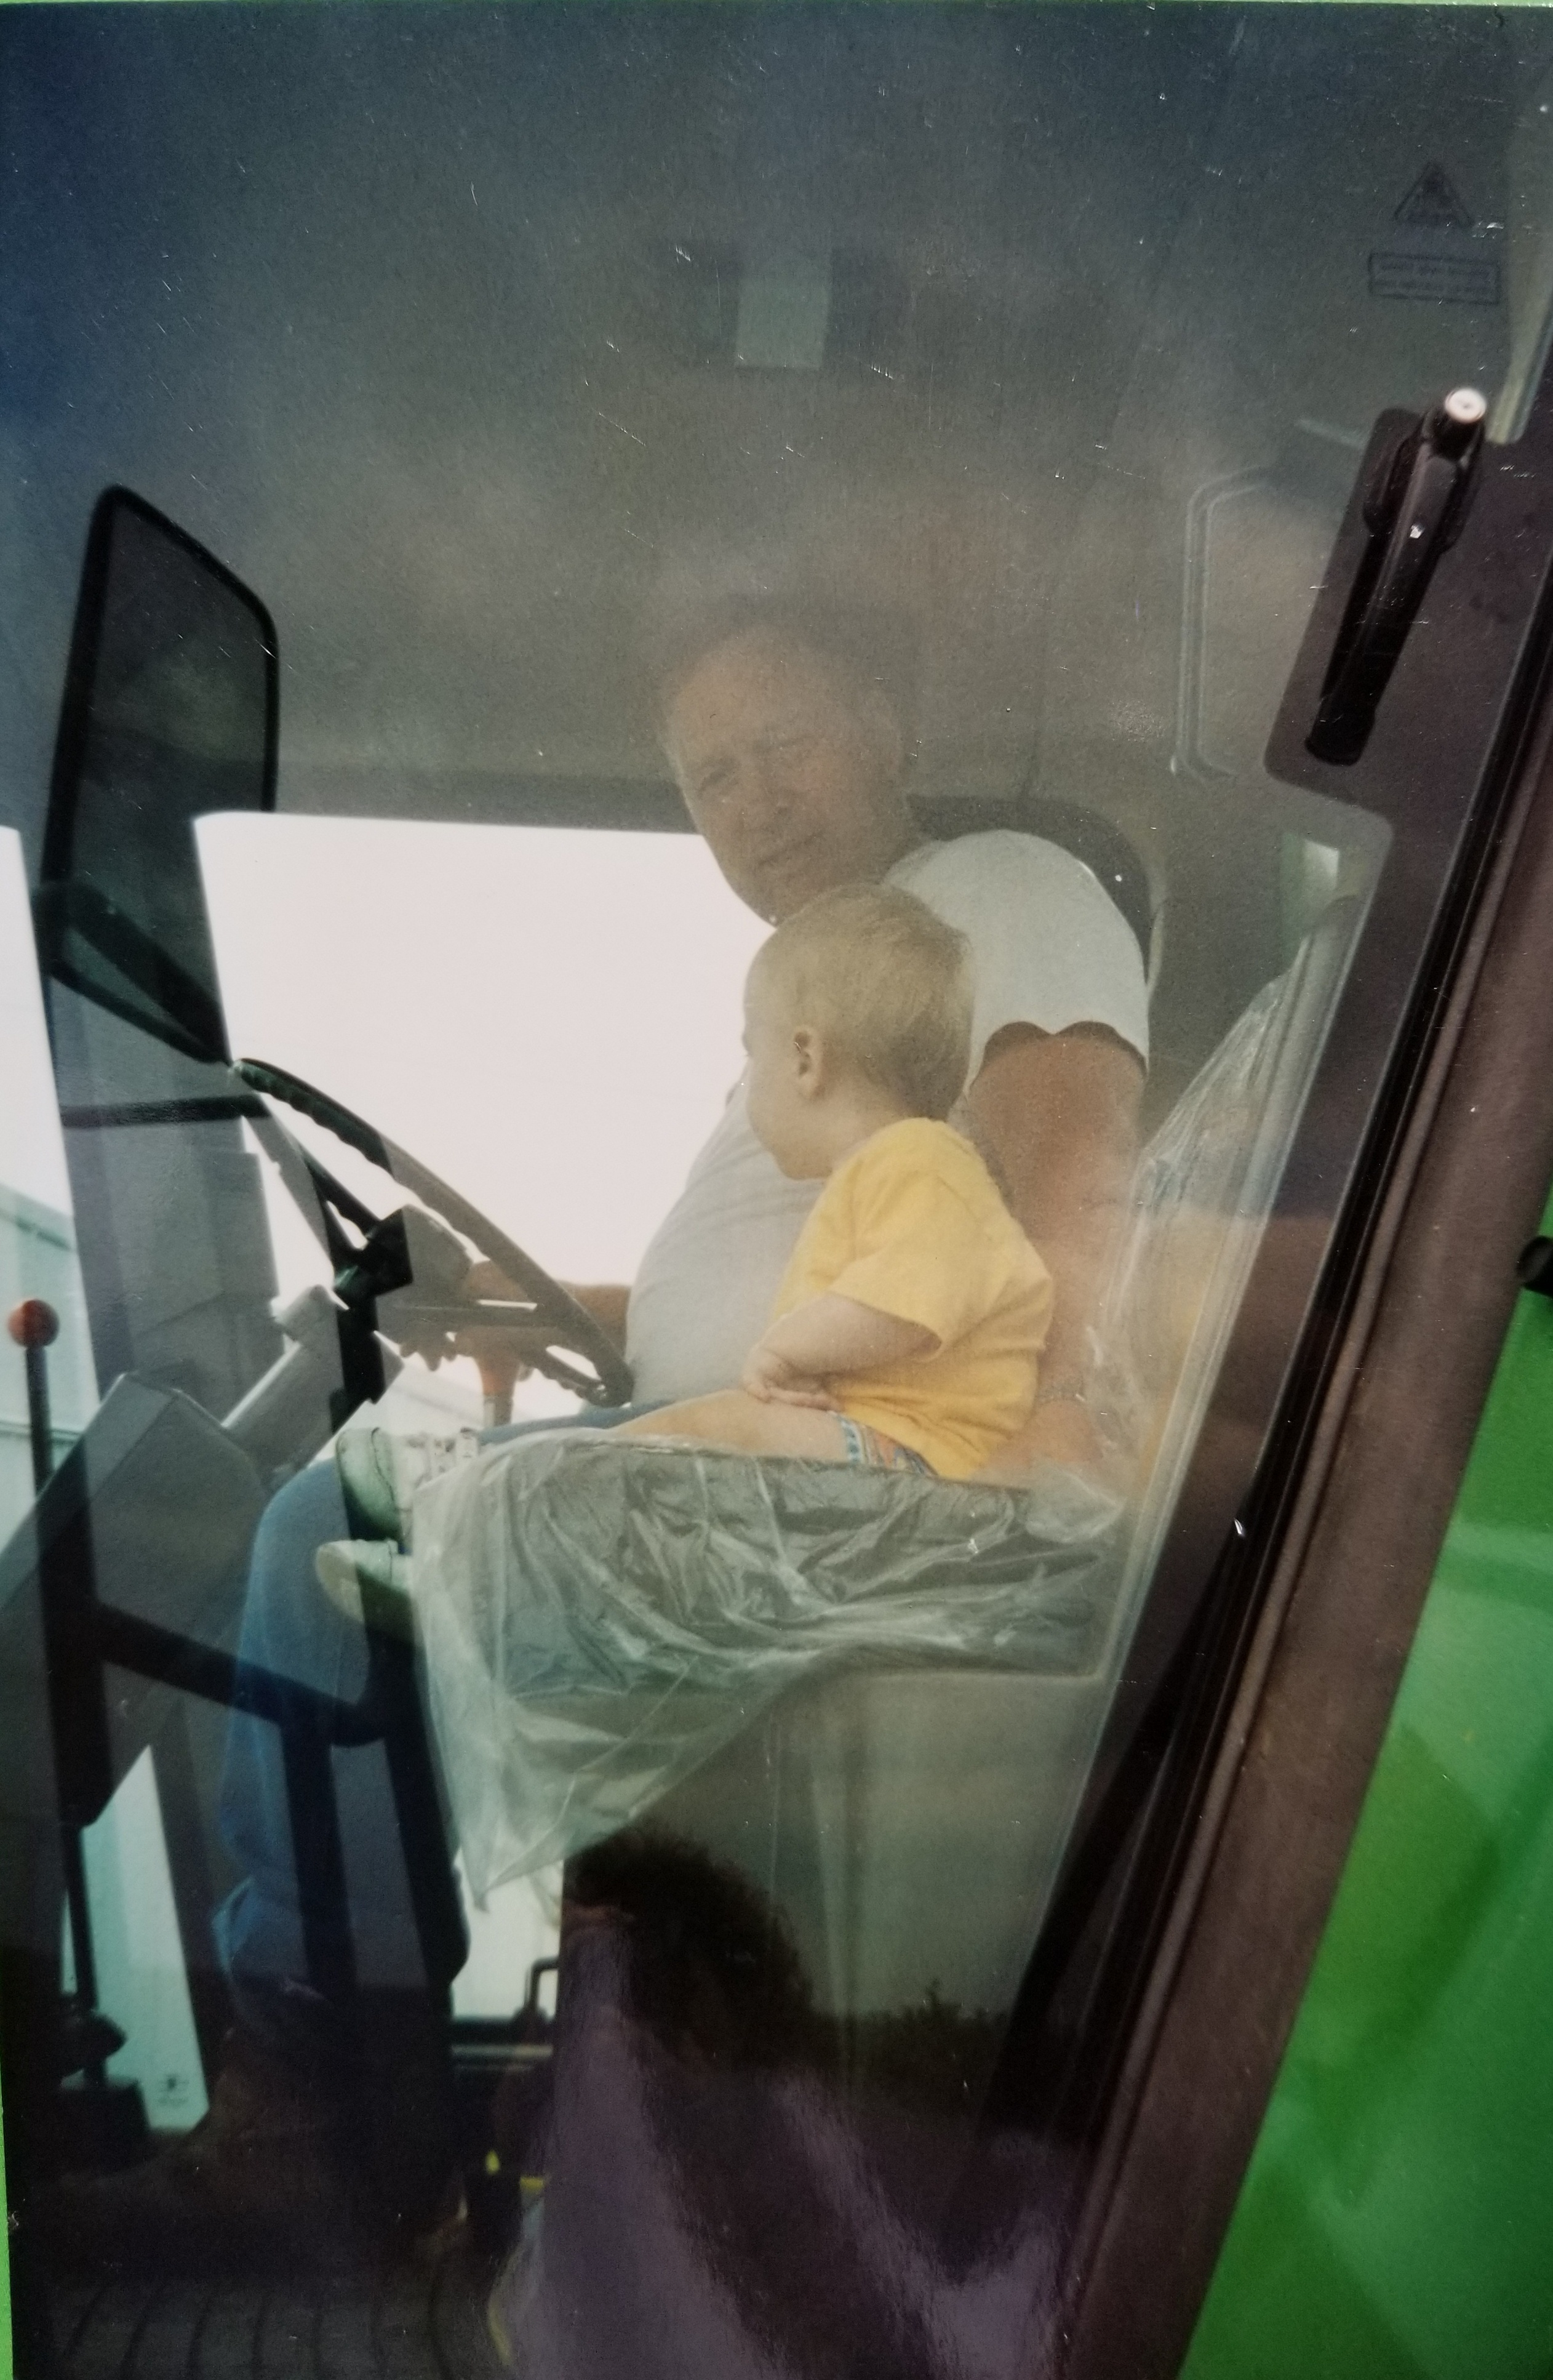 One of my early tractor rides with my grandpa